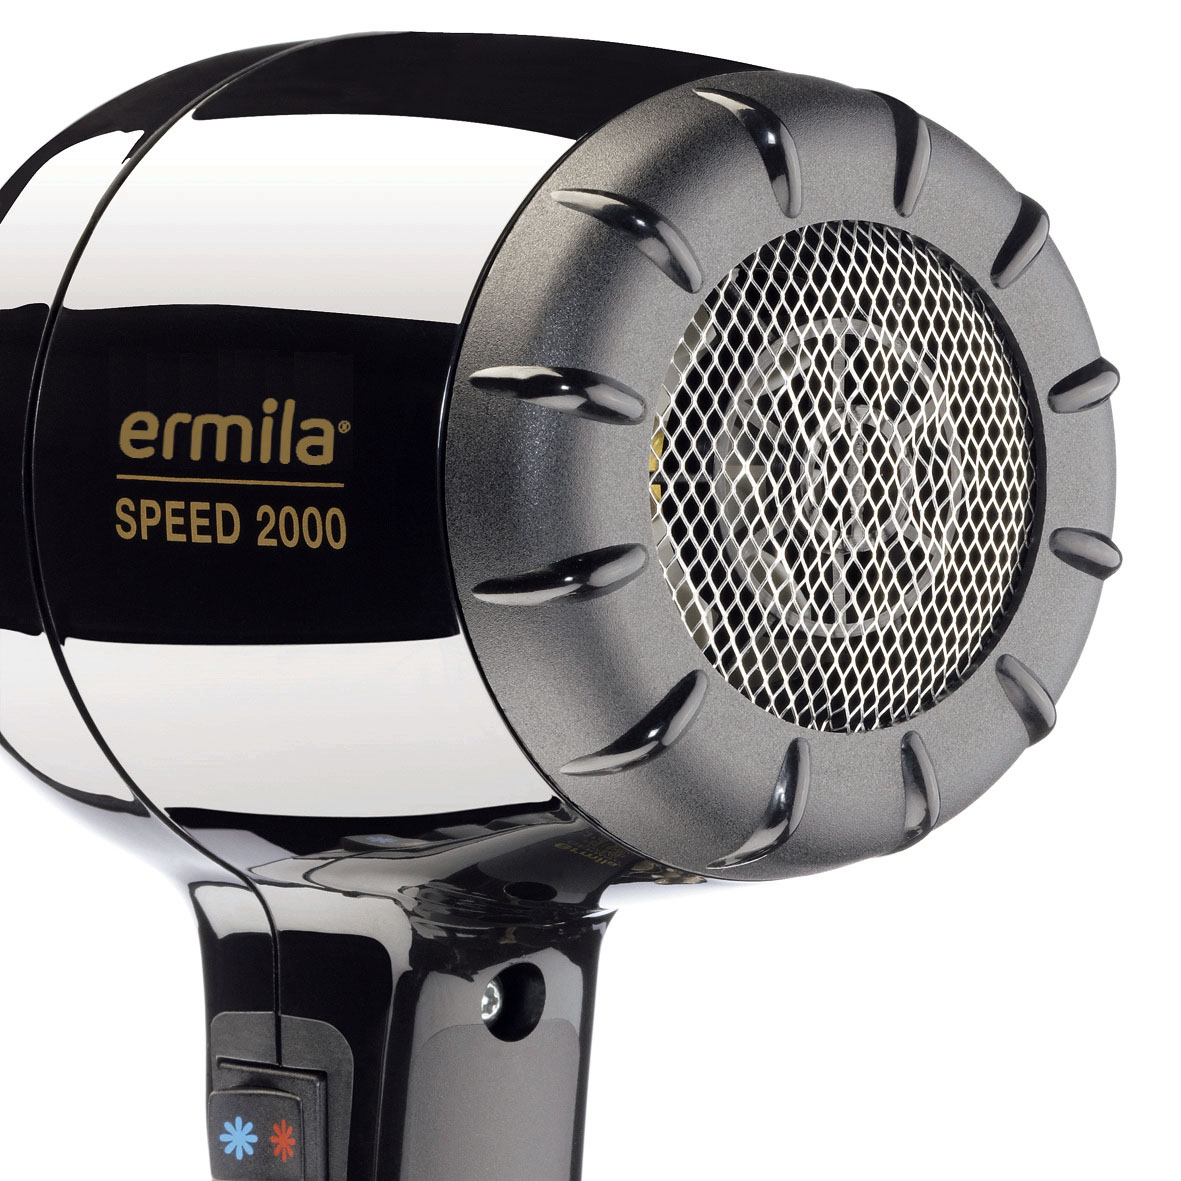 Ermila Speed 2000